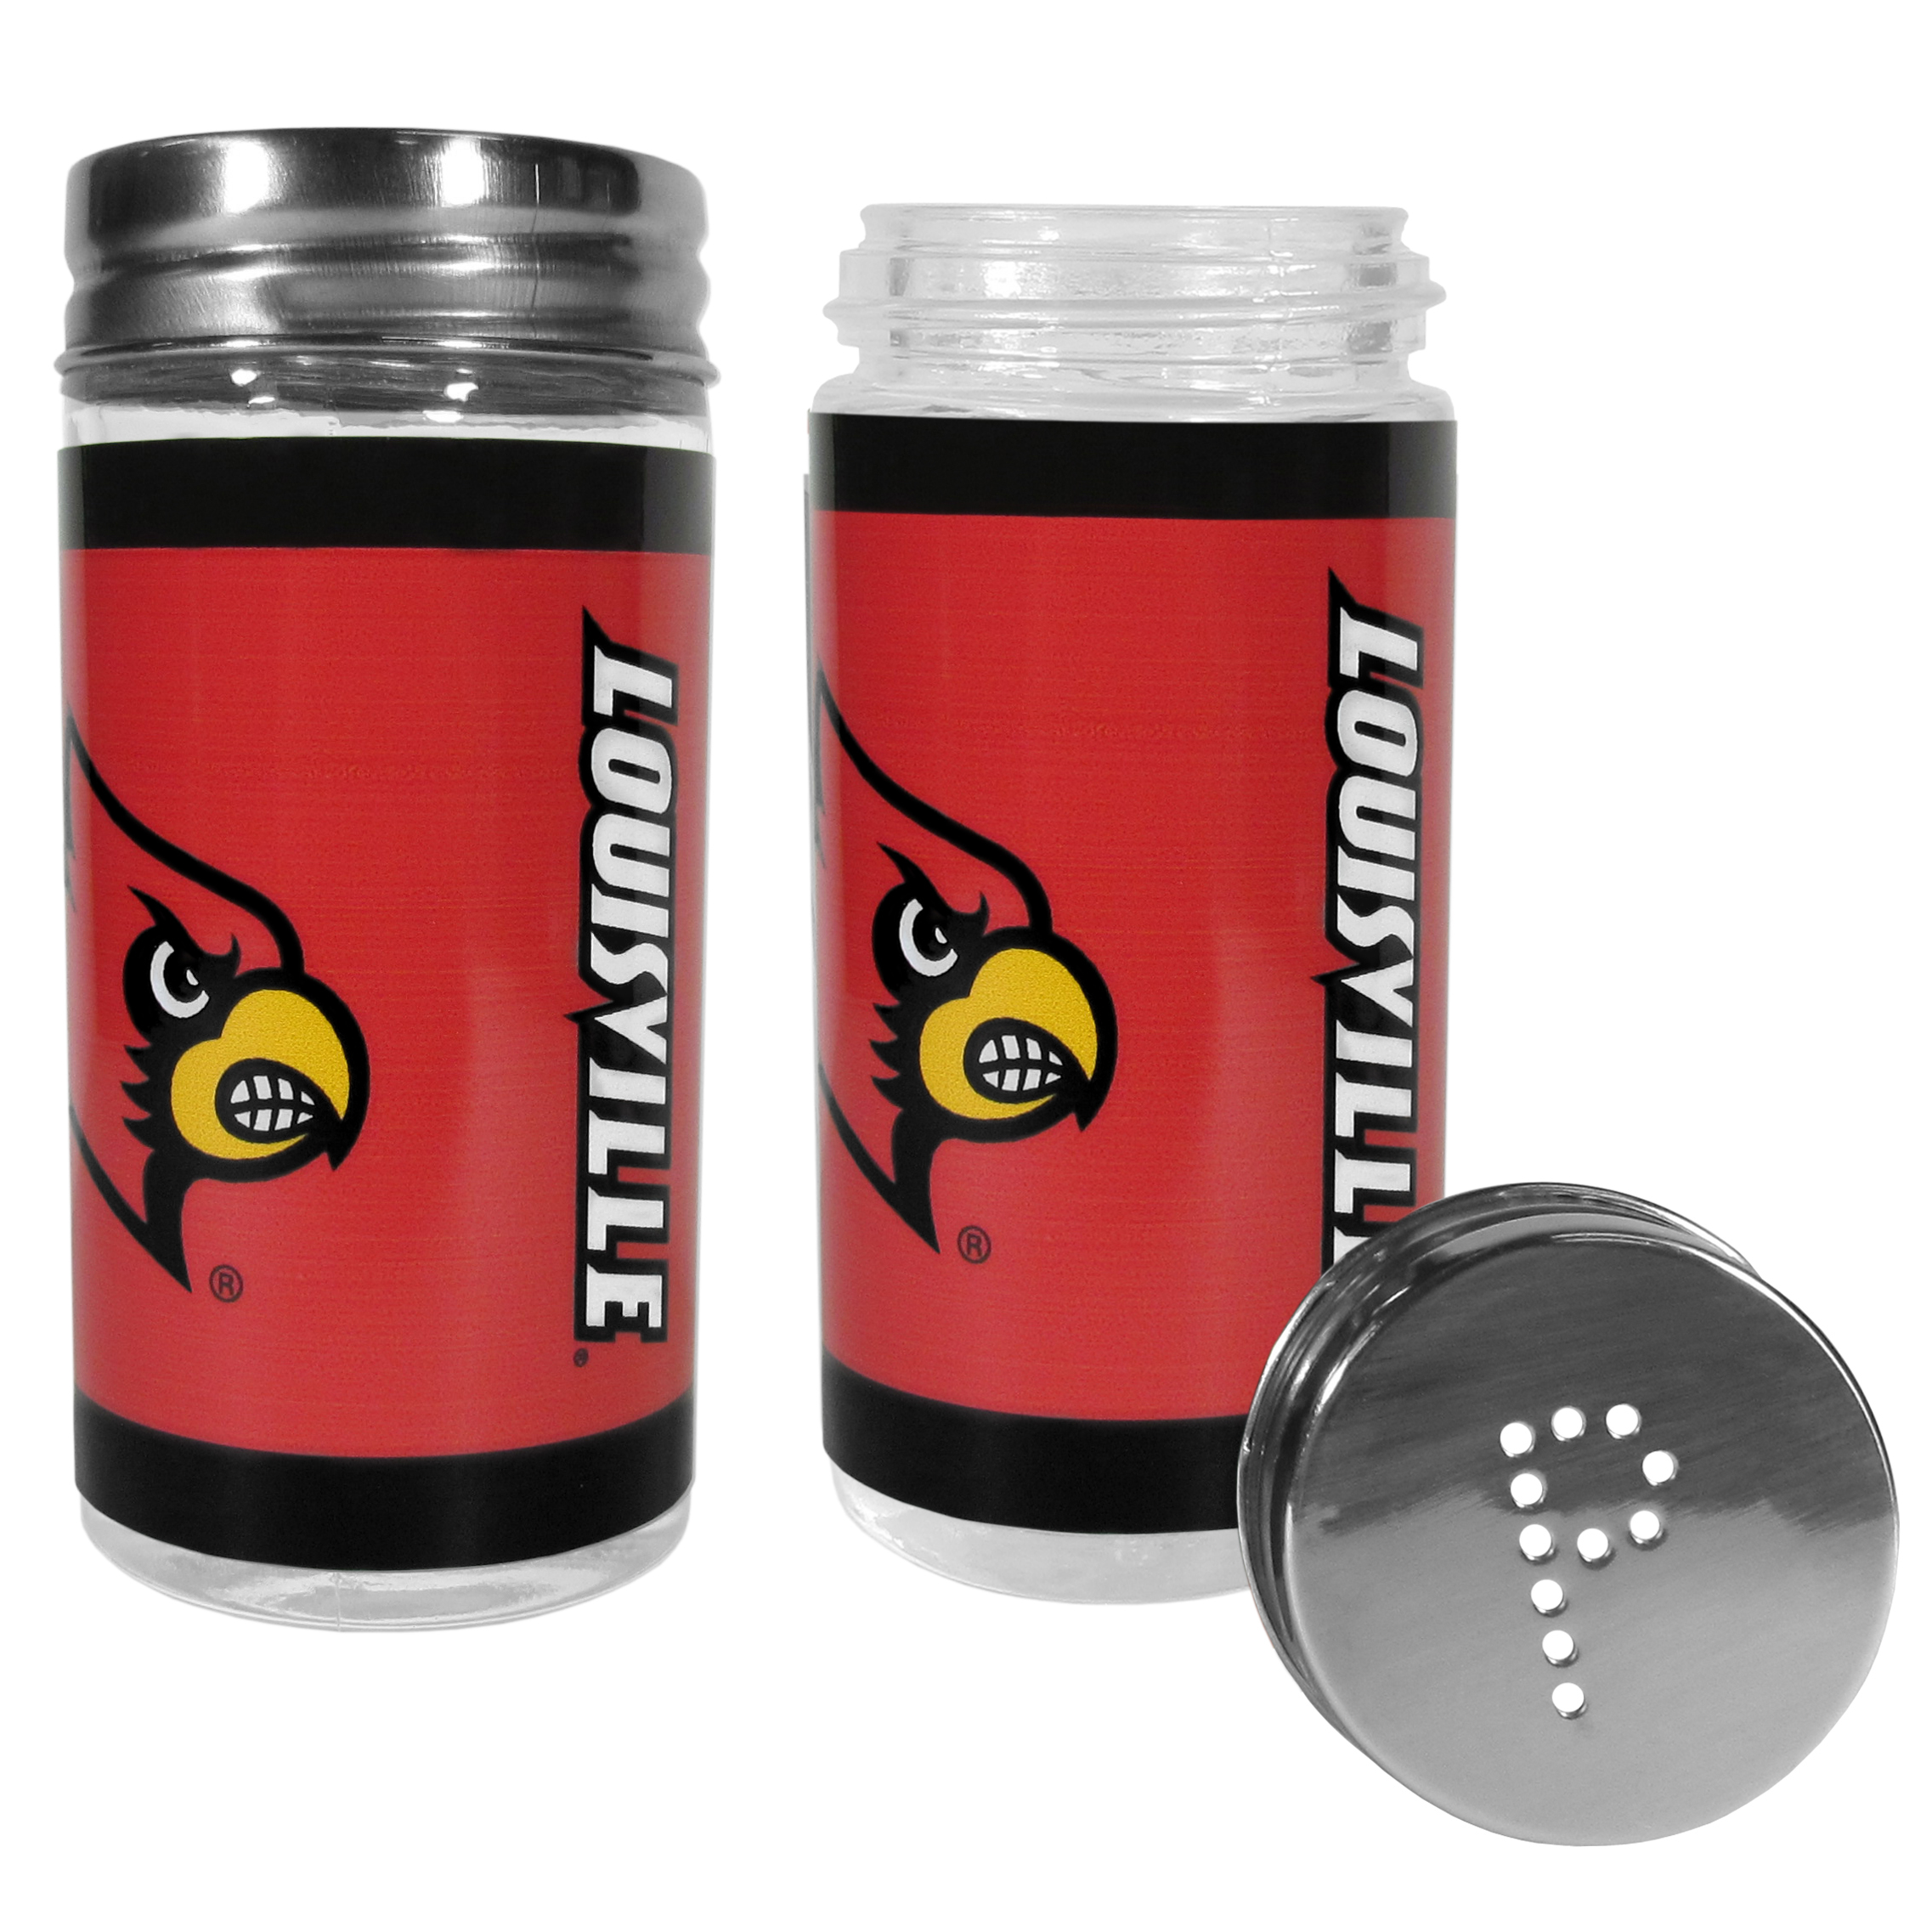 Louisville Cardinals Tailgater Salt & Pepper Shakers - No tailgate party is complete without your Louisville Cardinals salt & pepper shakers featuring bright team graphics. The glass shakers are 3.75 inches tall and the screw top lids have holes that spell out P and S. These team shakers are a great grill accessory whether you are barbecuing on the patio, picnicing or having a game day party.